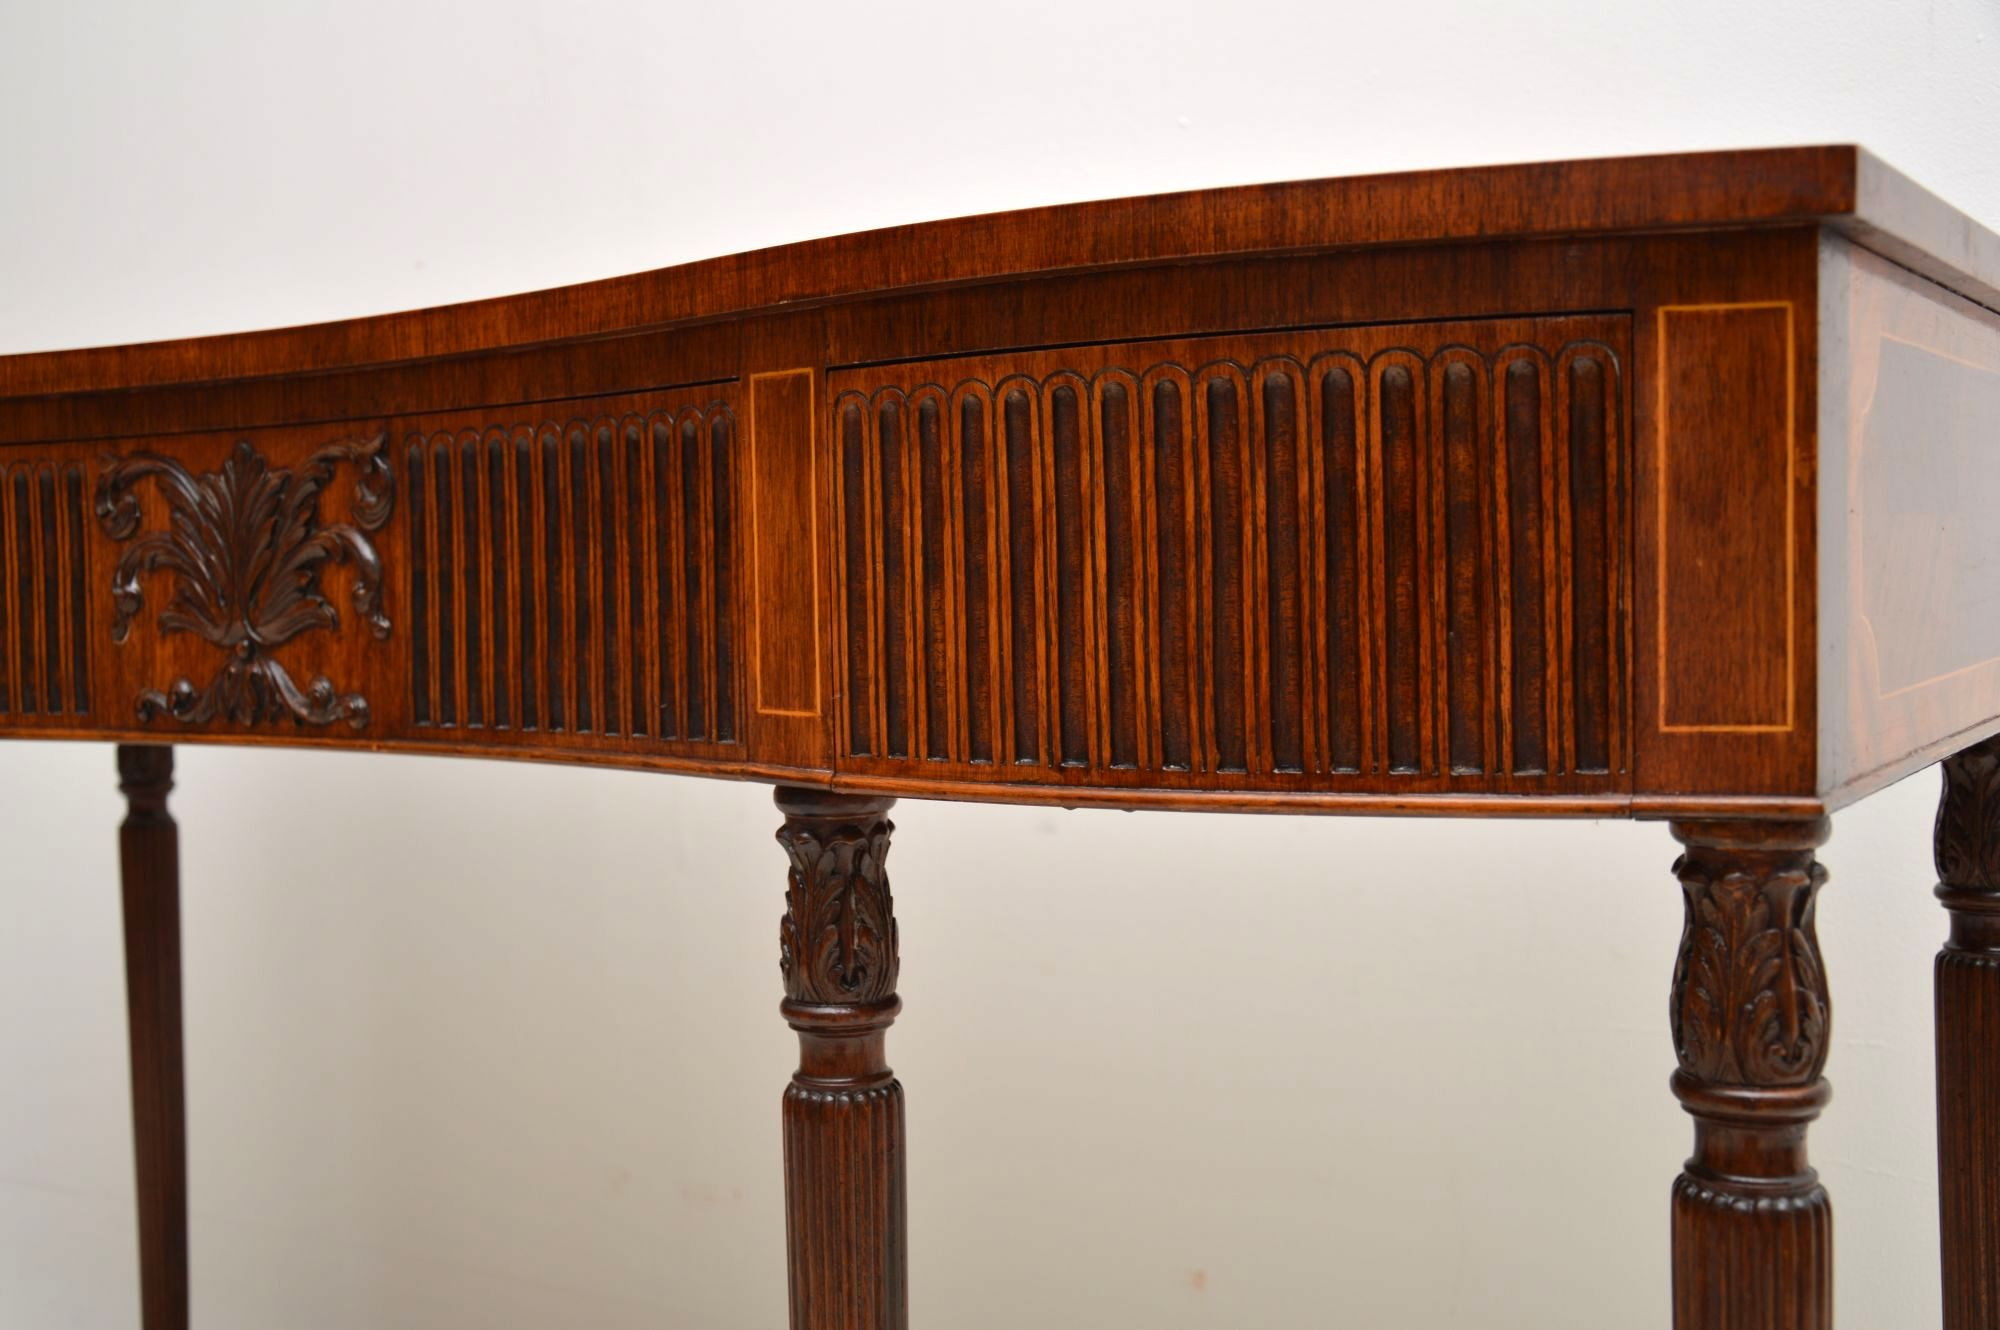 Antique Inlaid Mahogany & Kingwood Server Console Table | Marylebone With Orange Inlay Console Tables (View 7 of 30)